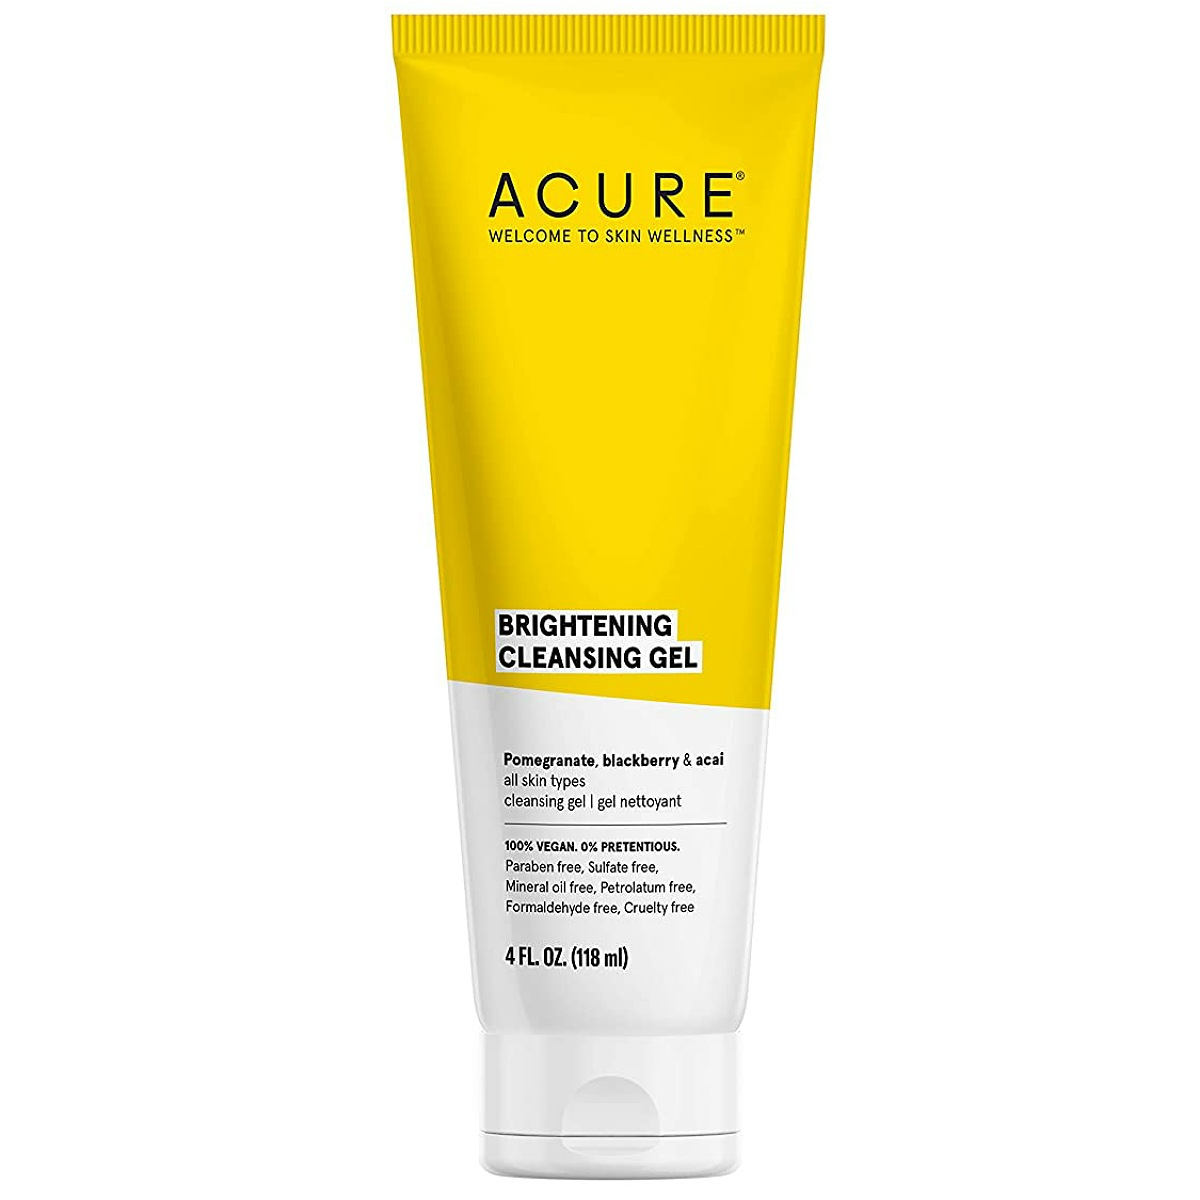 ACURE Brightening Cleansing Gel 100% Vegan For A Brighter Appearance Pomegranate Blackberry & Acai